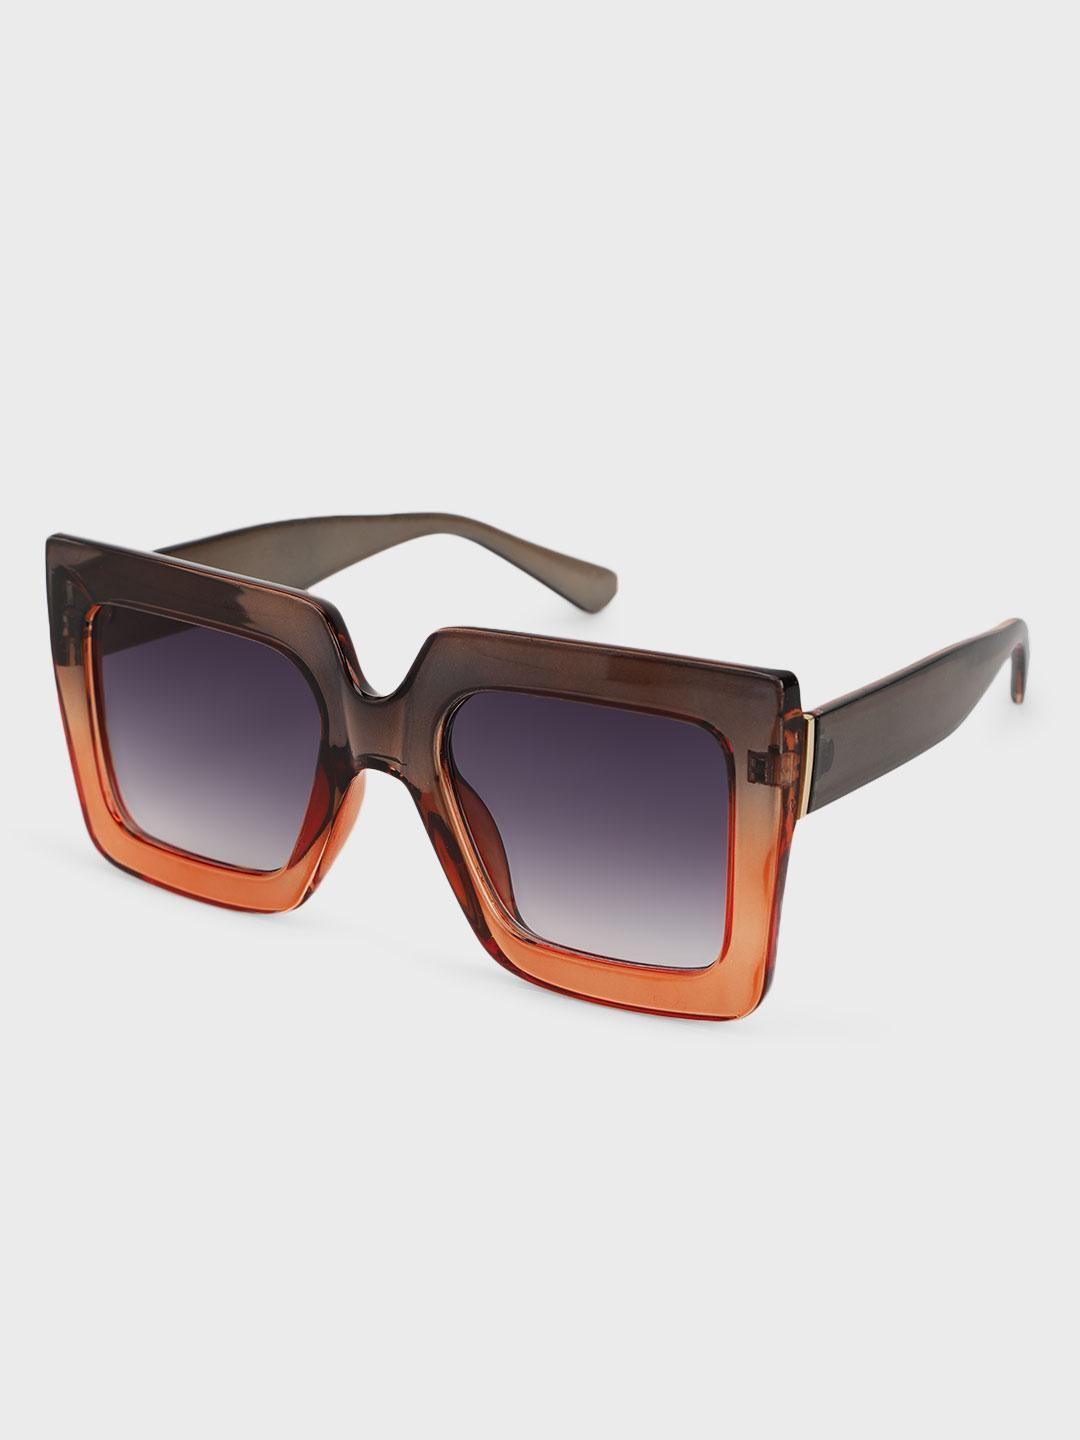 Pataaka Multi Tinted Lens Square Sunglasses 1